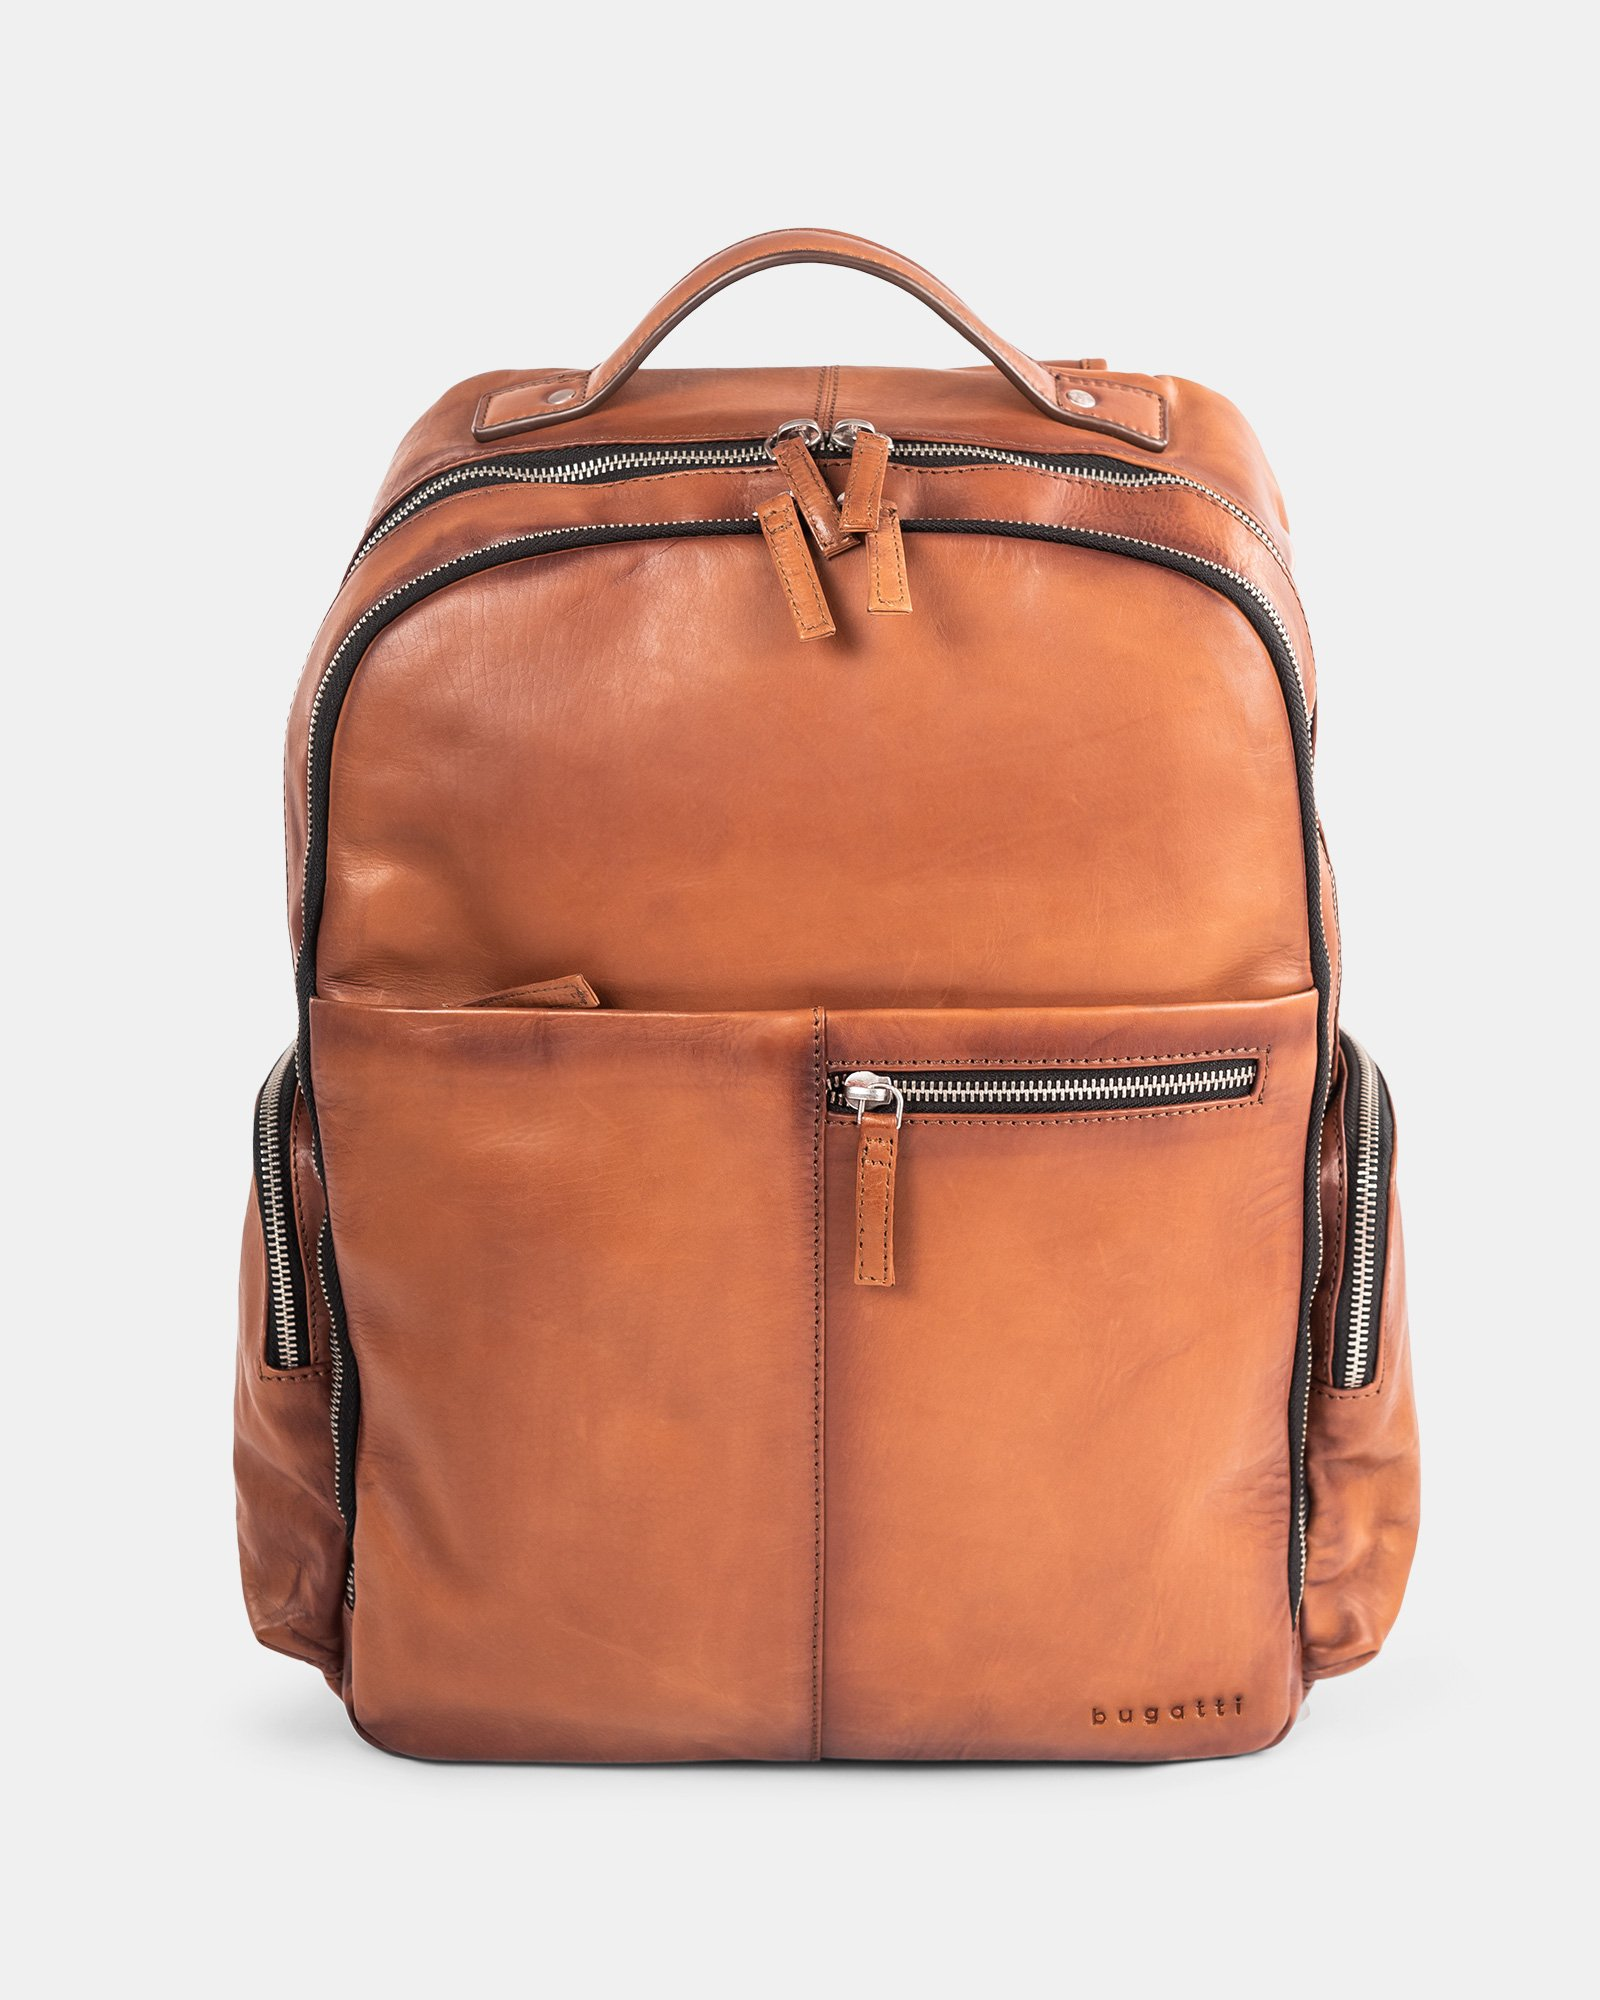 DOMUS 2.0 - LEATHER BACKPACK BAG FOR 14 IN LAPTOP - COGNAC - Bugatti - Zoom